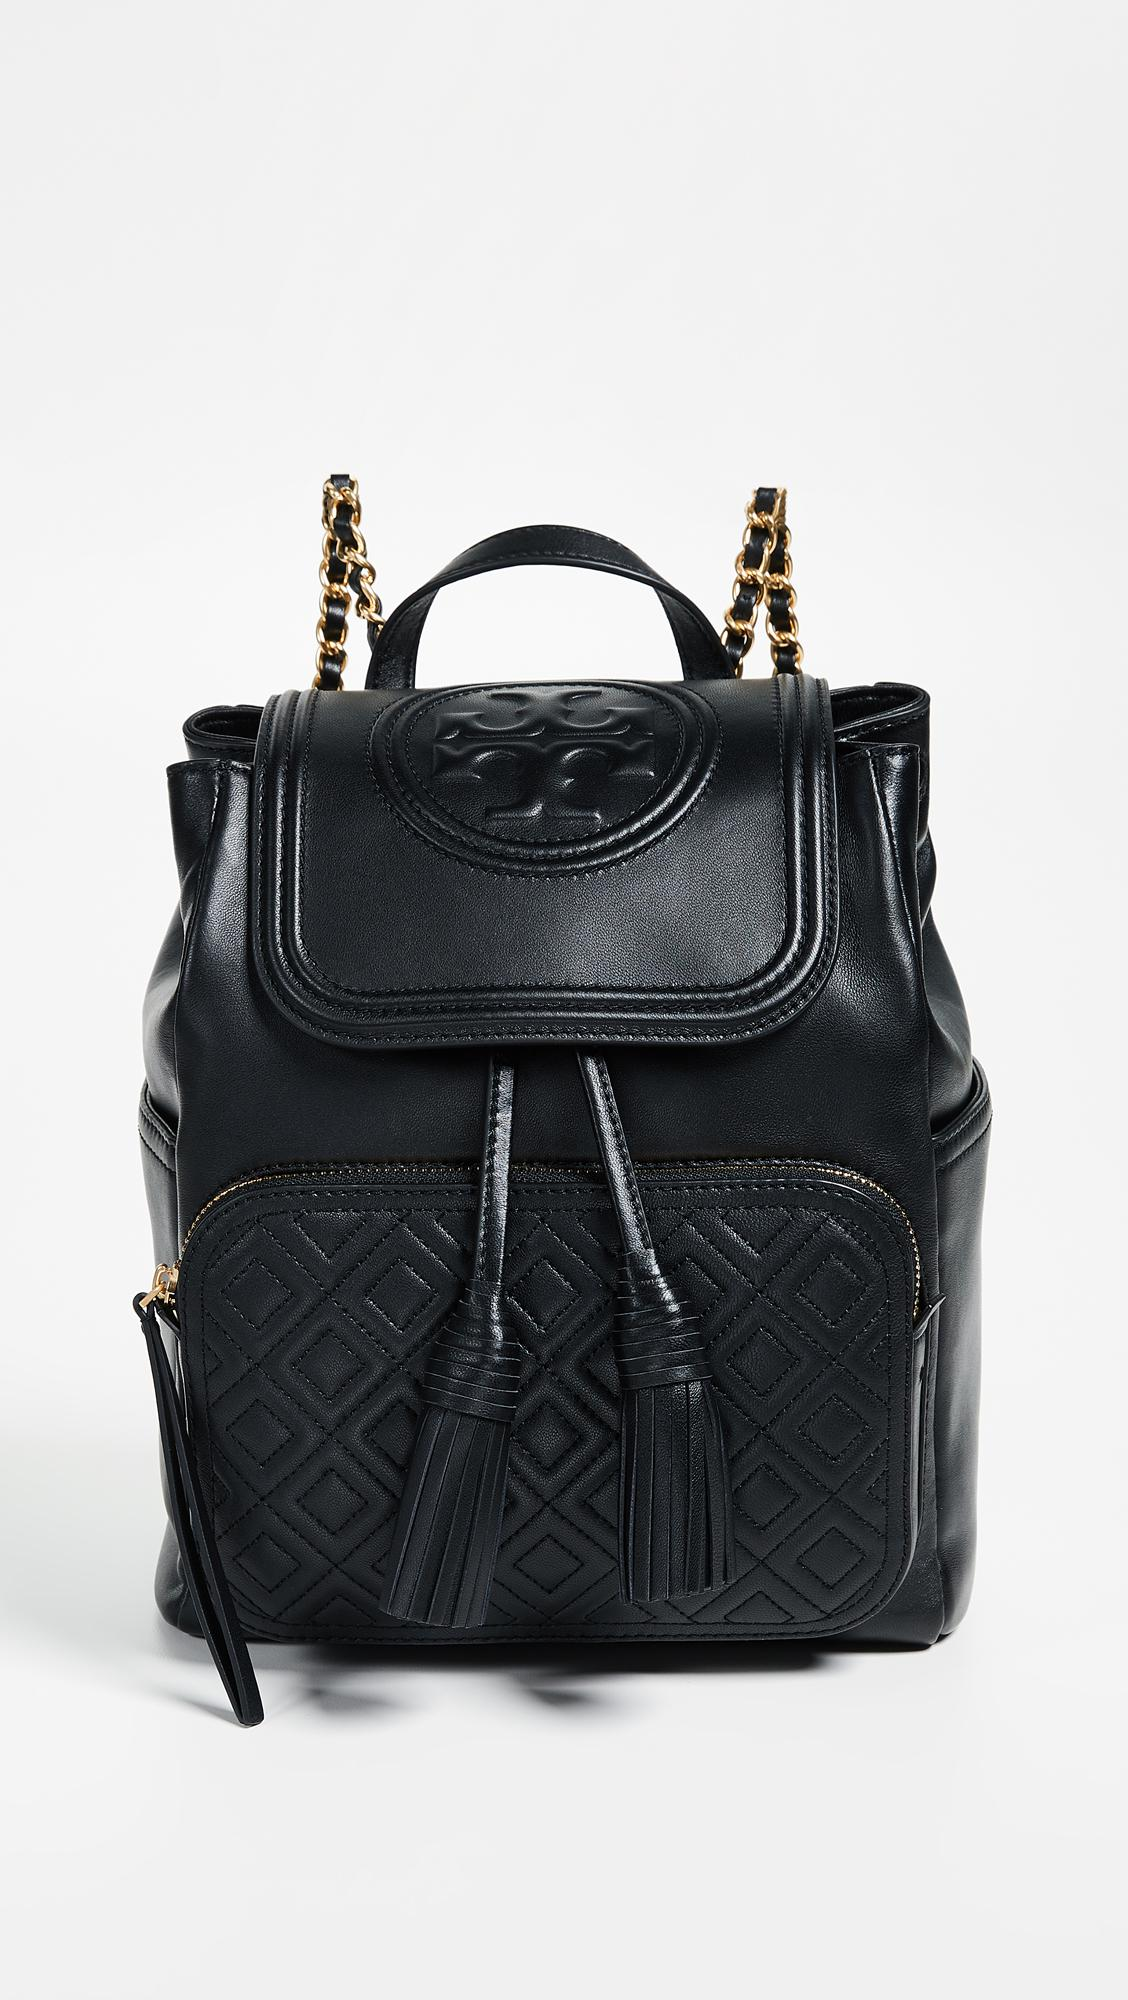 7c8e89920d1 Tory Burch Fleming Backpack in Black - Save 37% - Lyst